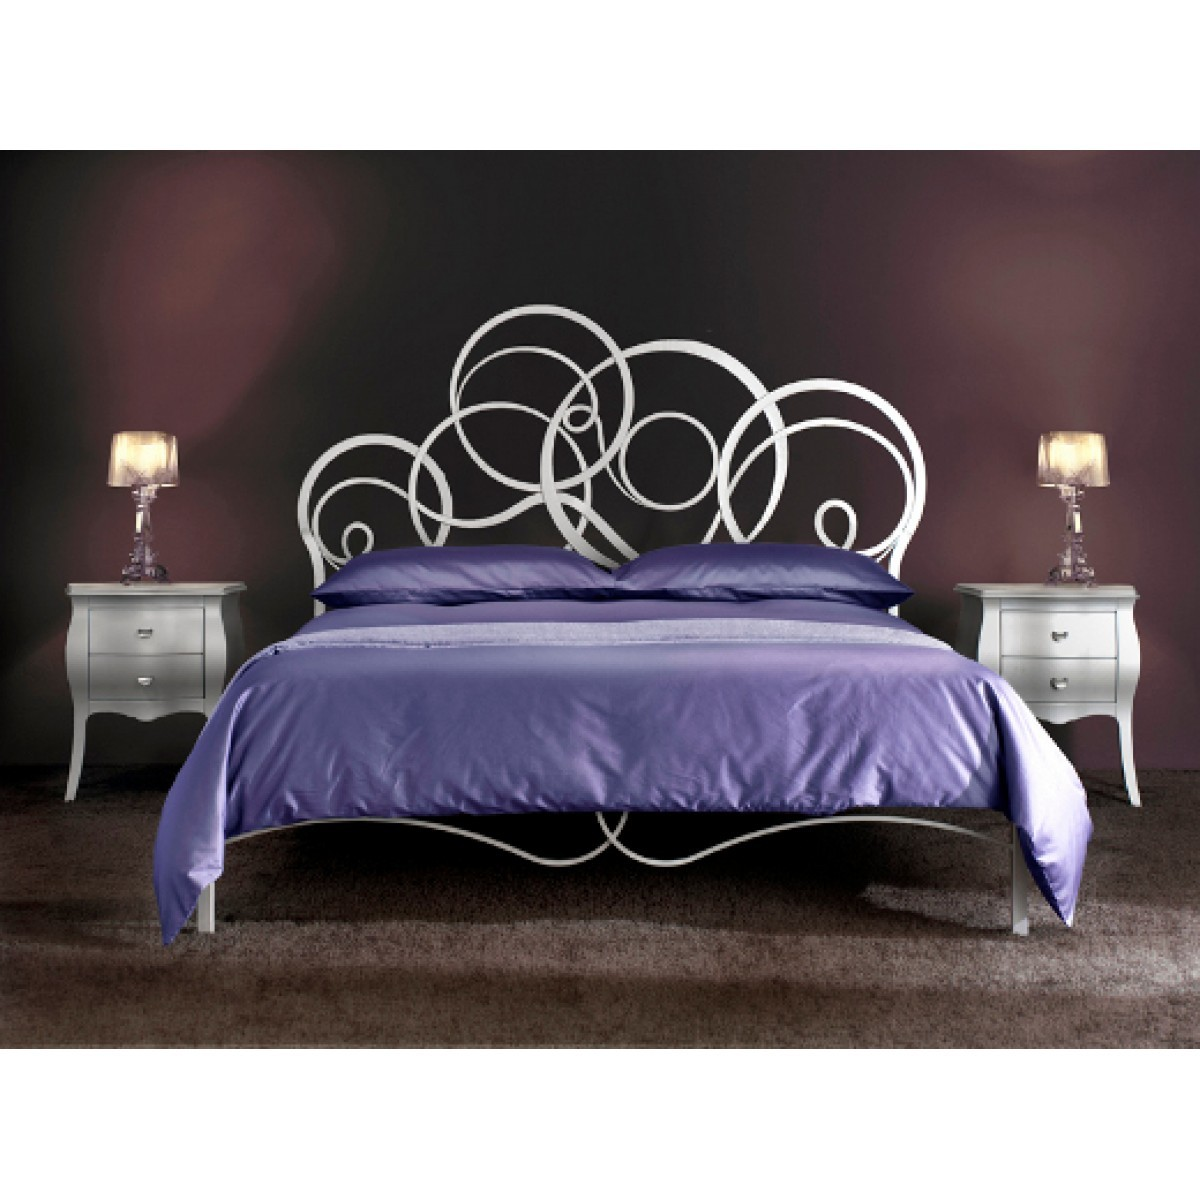 an italian beautiful bed iron bed Arabesco by Cosatto